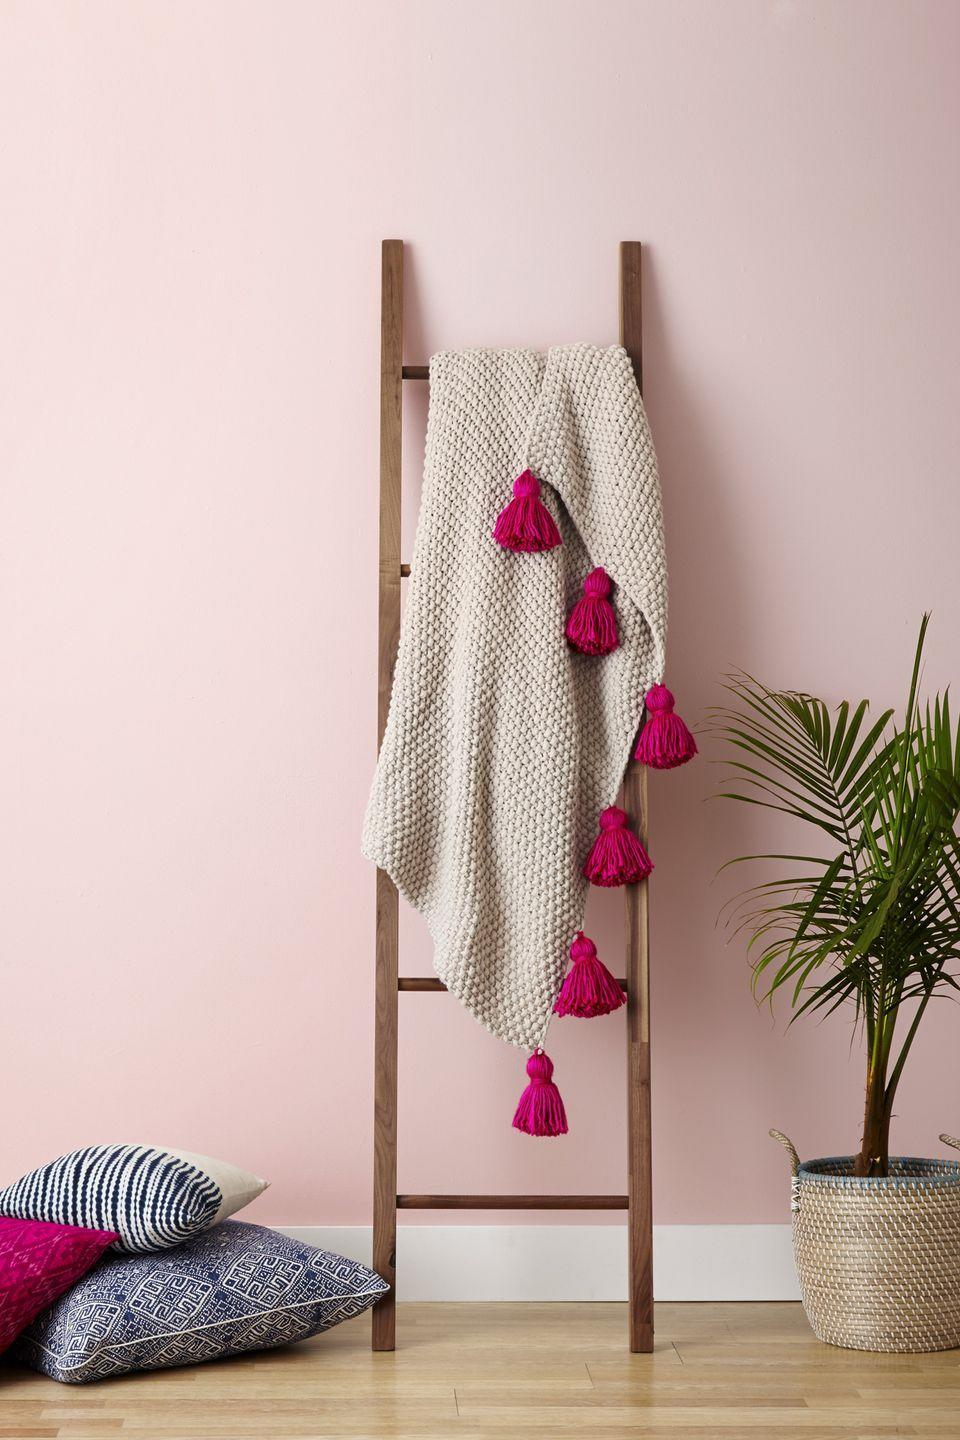 """<p>Because your living room isn't complete unless it has at least three fuzzy throws. Before putting this wooden ladder on display, dress up a plain blanket by creating extra-large tassels and pom-poms from thick yarn and knotting them onto the end. </p><p><a class=""""link rapid-noclick-resp"""" href=""""https://www.amazon.com/Hallops-Blanket-Premium-Decorative-Blankets/dp/B07VP2X9KR/?tag=syn-yahoo-20&ascsubtag=%5Bartid%7C10055.g.1711%5Bsrc%7Cyahoo-us"""" rel=""""nofollow noopener"""" target=""""_blank"""" data-ylk=""""slk:SHOP BLANKET LADDERS"""">SHOP BLANKET LADDERS</a></p>"""